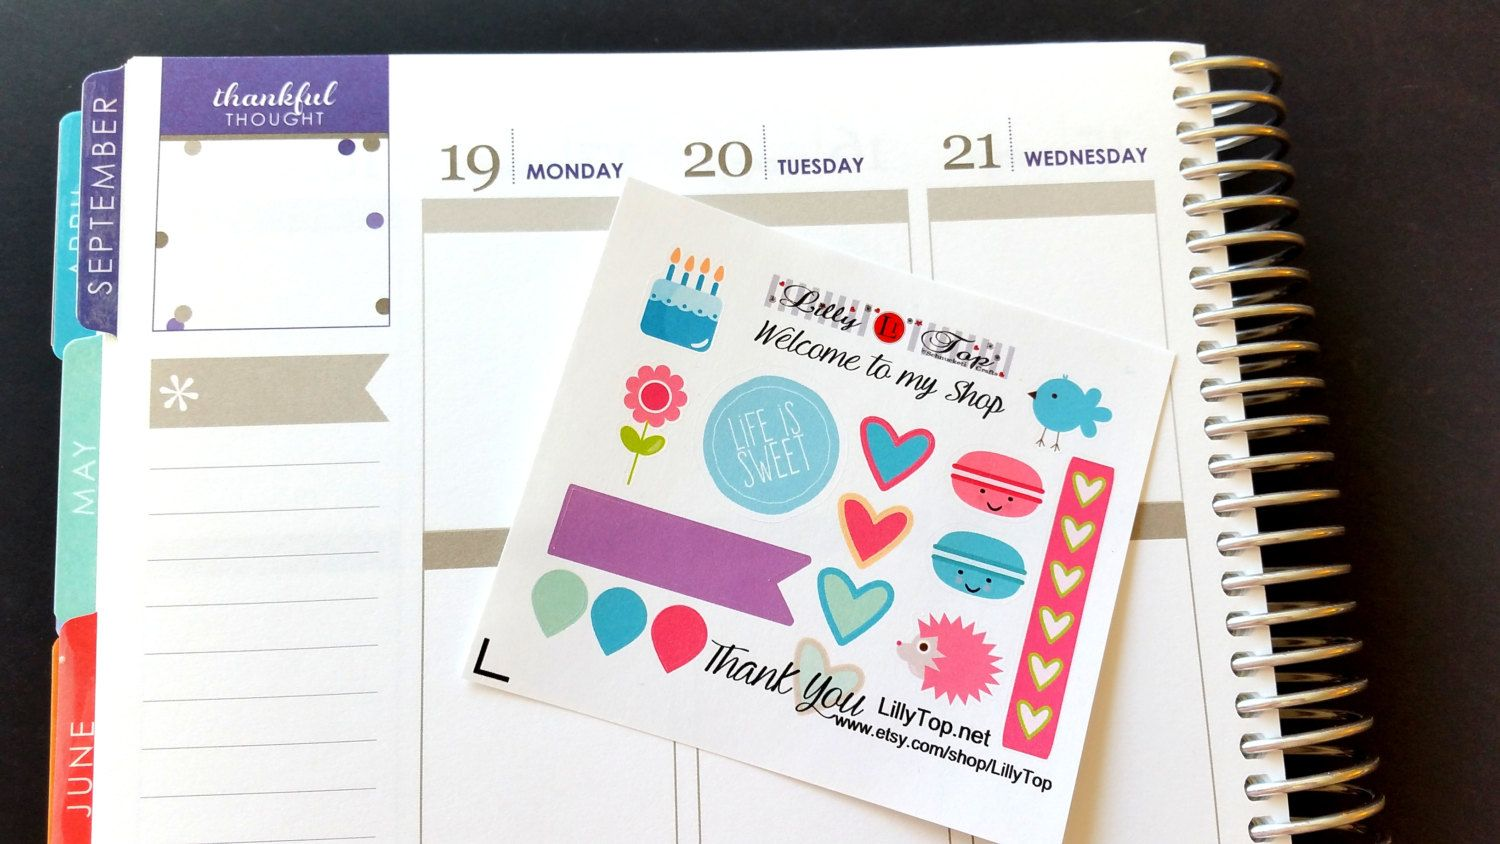 Lil Page, Cake, Flower, ADD ON for orders over 10.00, Fits Erin Condren and others, Plum Planner, Lilly P., Planner Stickers, Scrapbook by LillyTop on Etsy